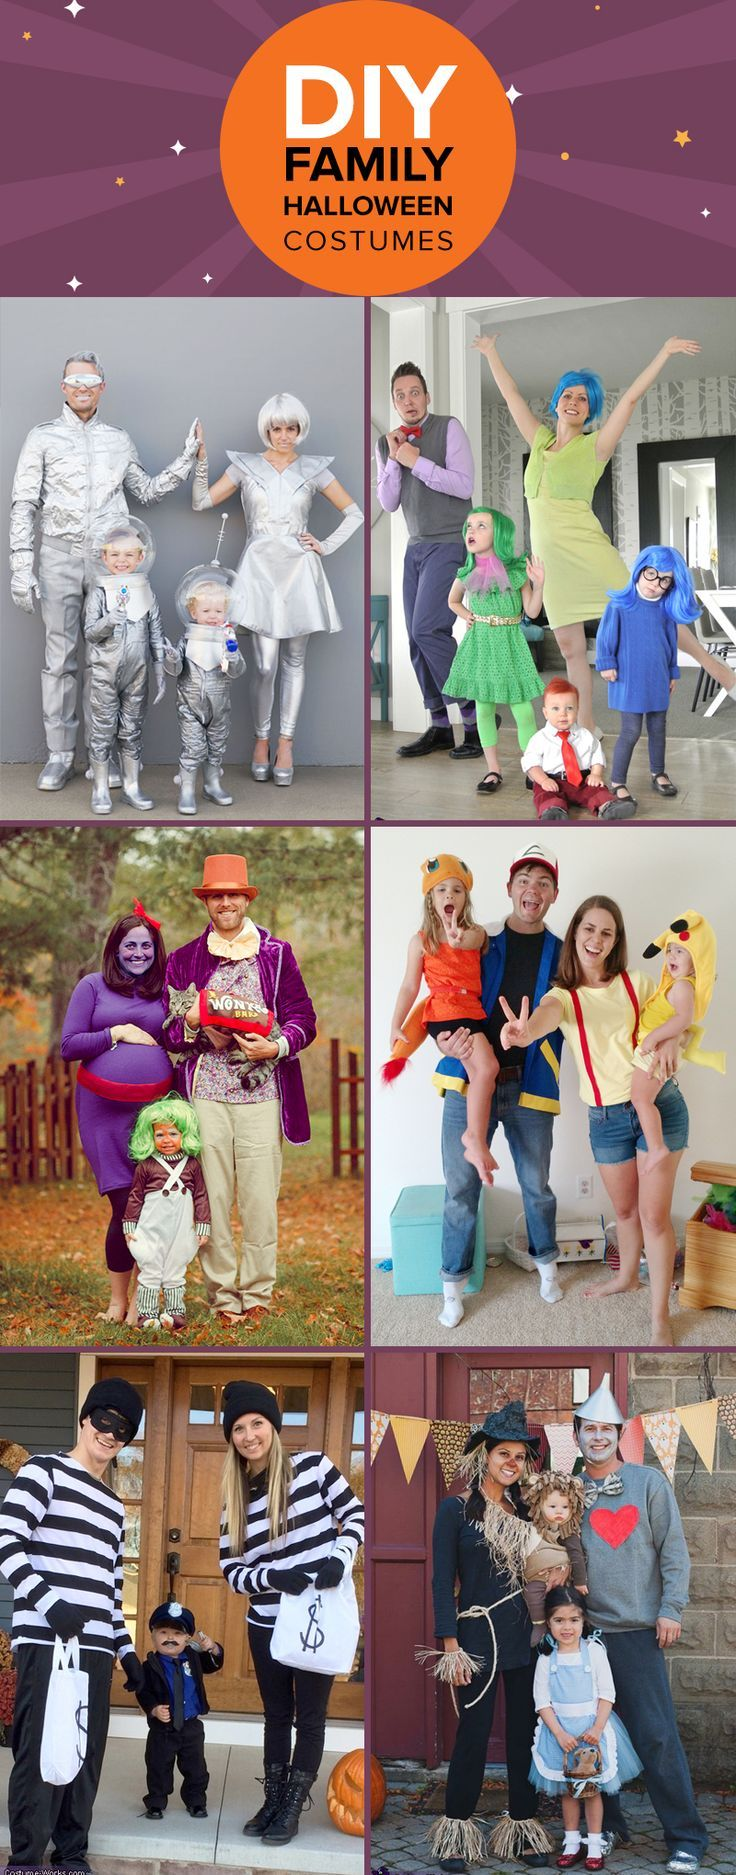 of the best family halloween costumes to inspire your monster